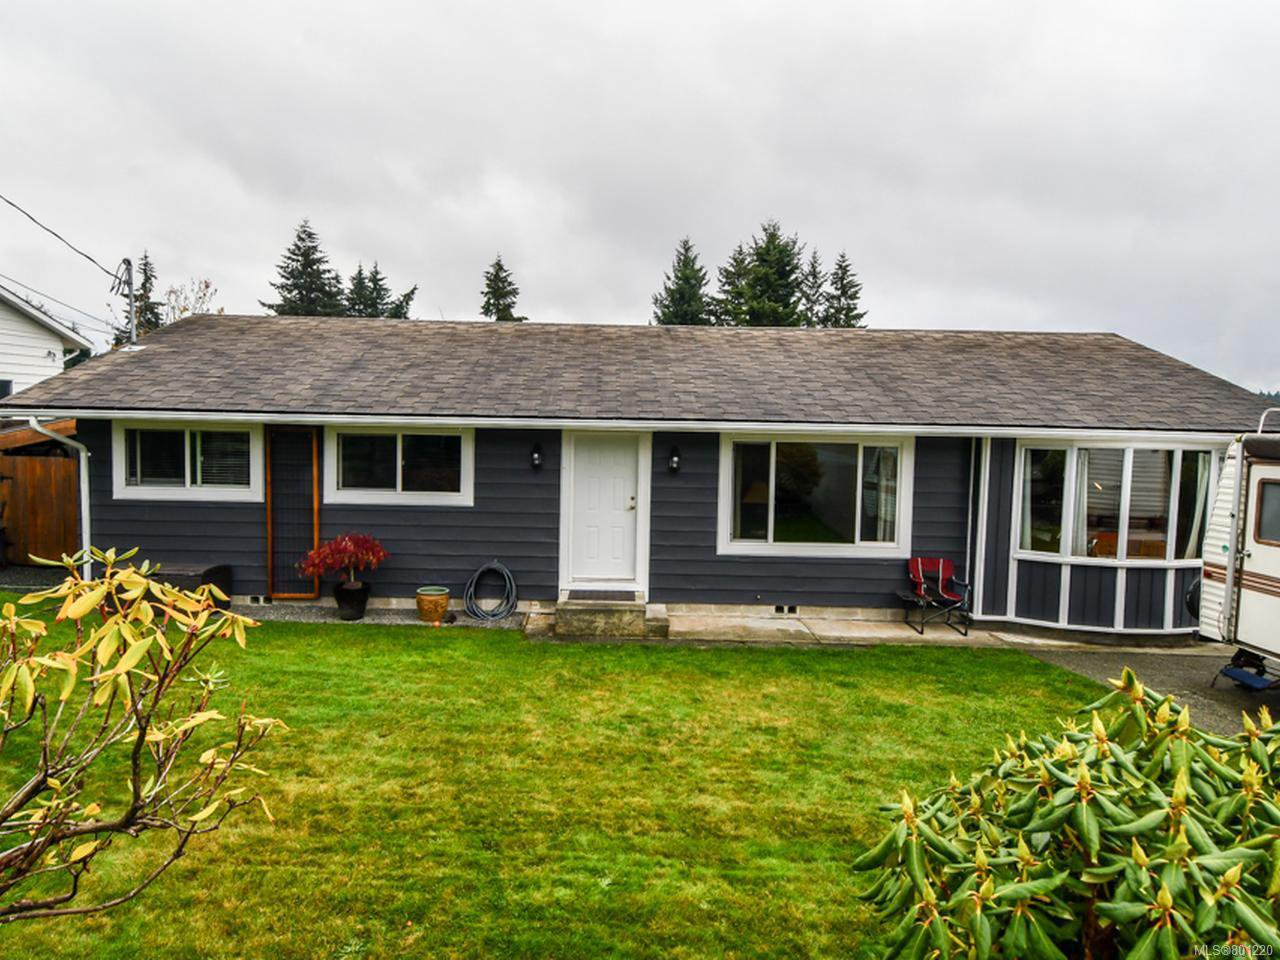 Main Photo: 663 SANDOWNE DRIVE in CAMPBELL RIVER: CR Campbell River Central House for sale (Campbell River)  : MLS®# 801220